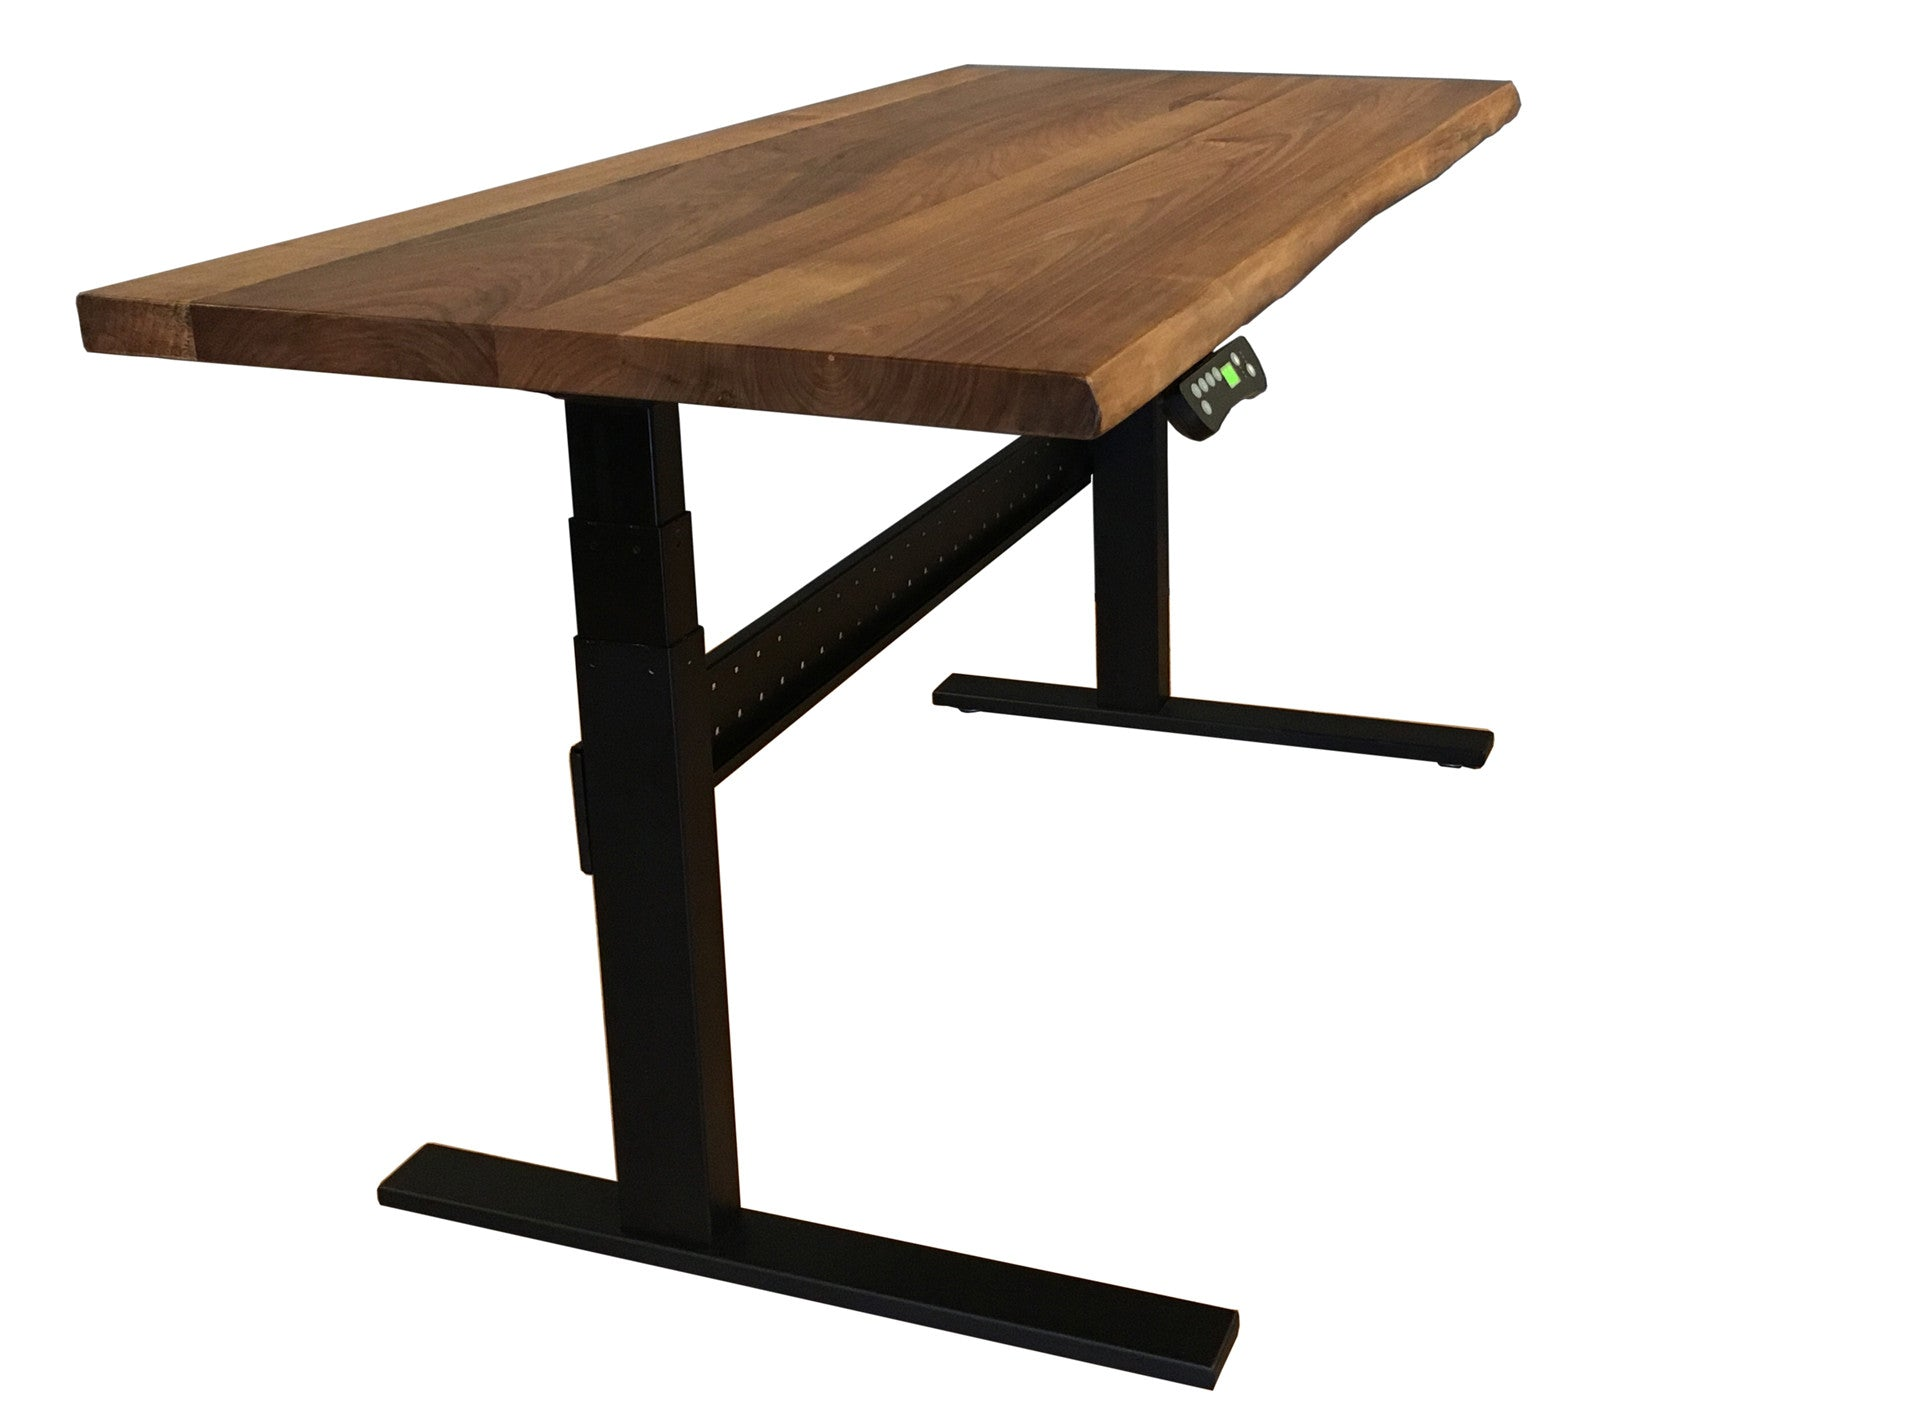 Beau Adjustable Height Desk, Stand / Sit Desk, Motorized With Memory Settings